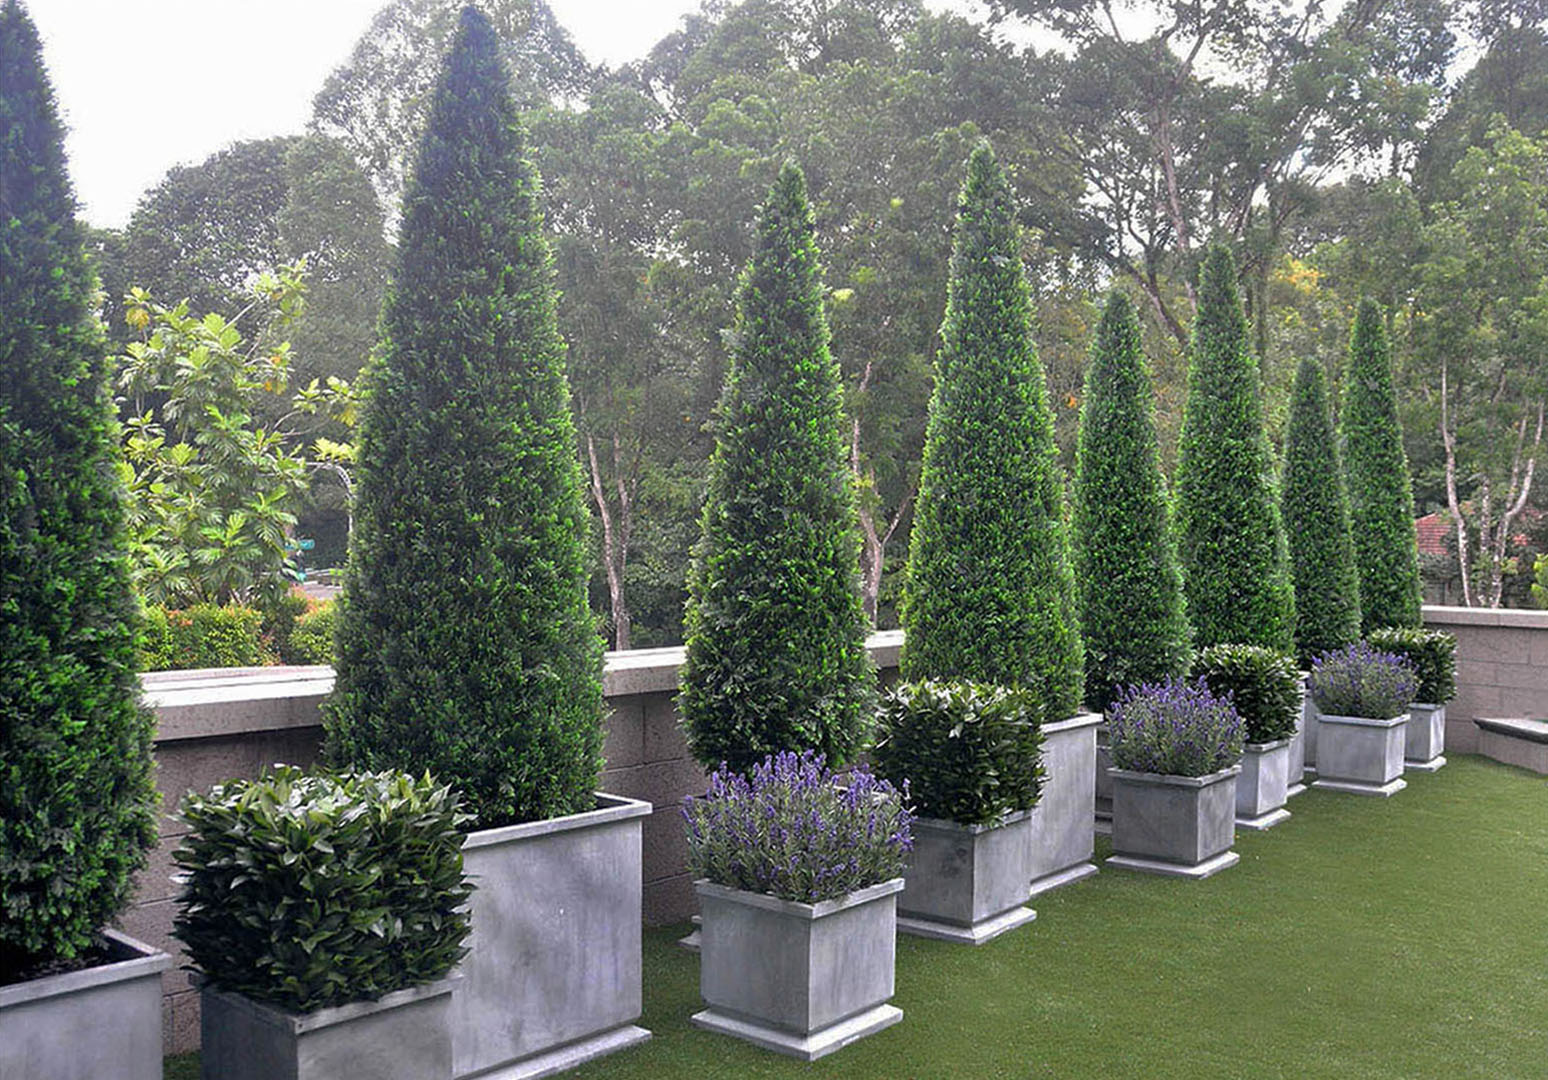 416 Fake Landscapes cypress with bay and lavender Singapore